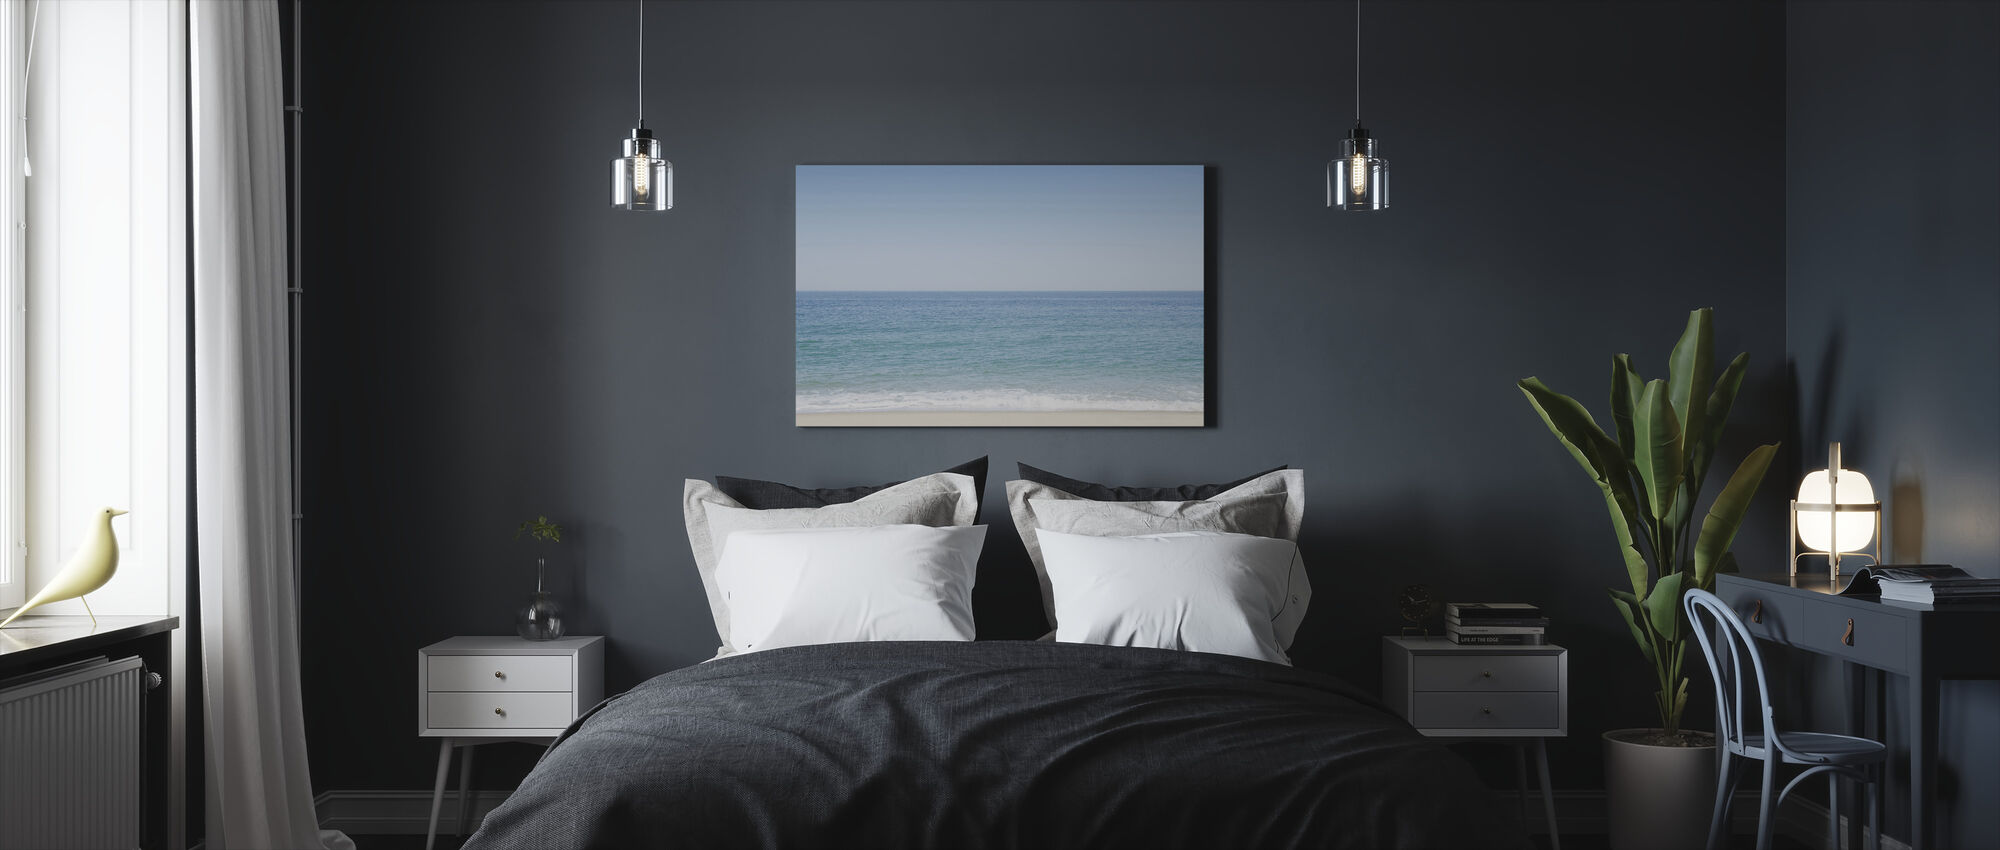 Tied to the Ocean - Canvas print - Bedroom